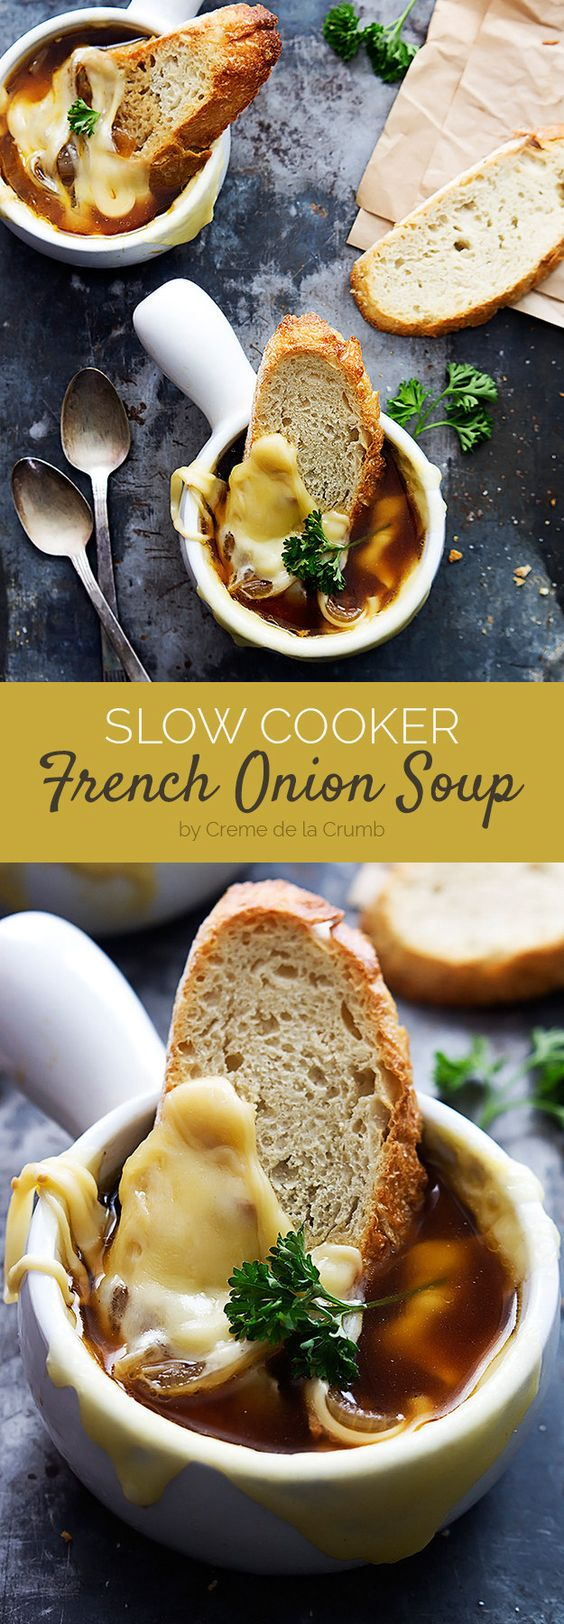 Slow Cooker French Onion Soup | Here Are 7 Weeknight Dump Dinners You Can Make In Your Slow Cooker